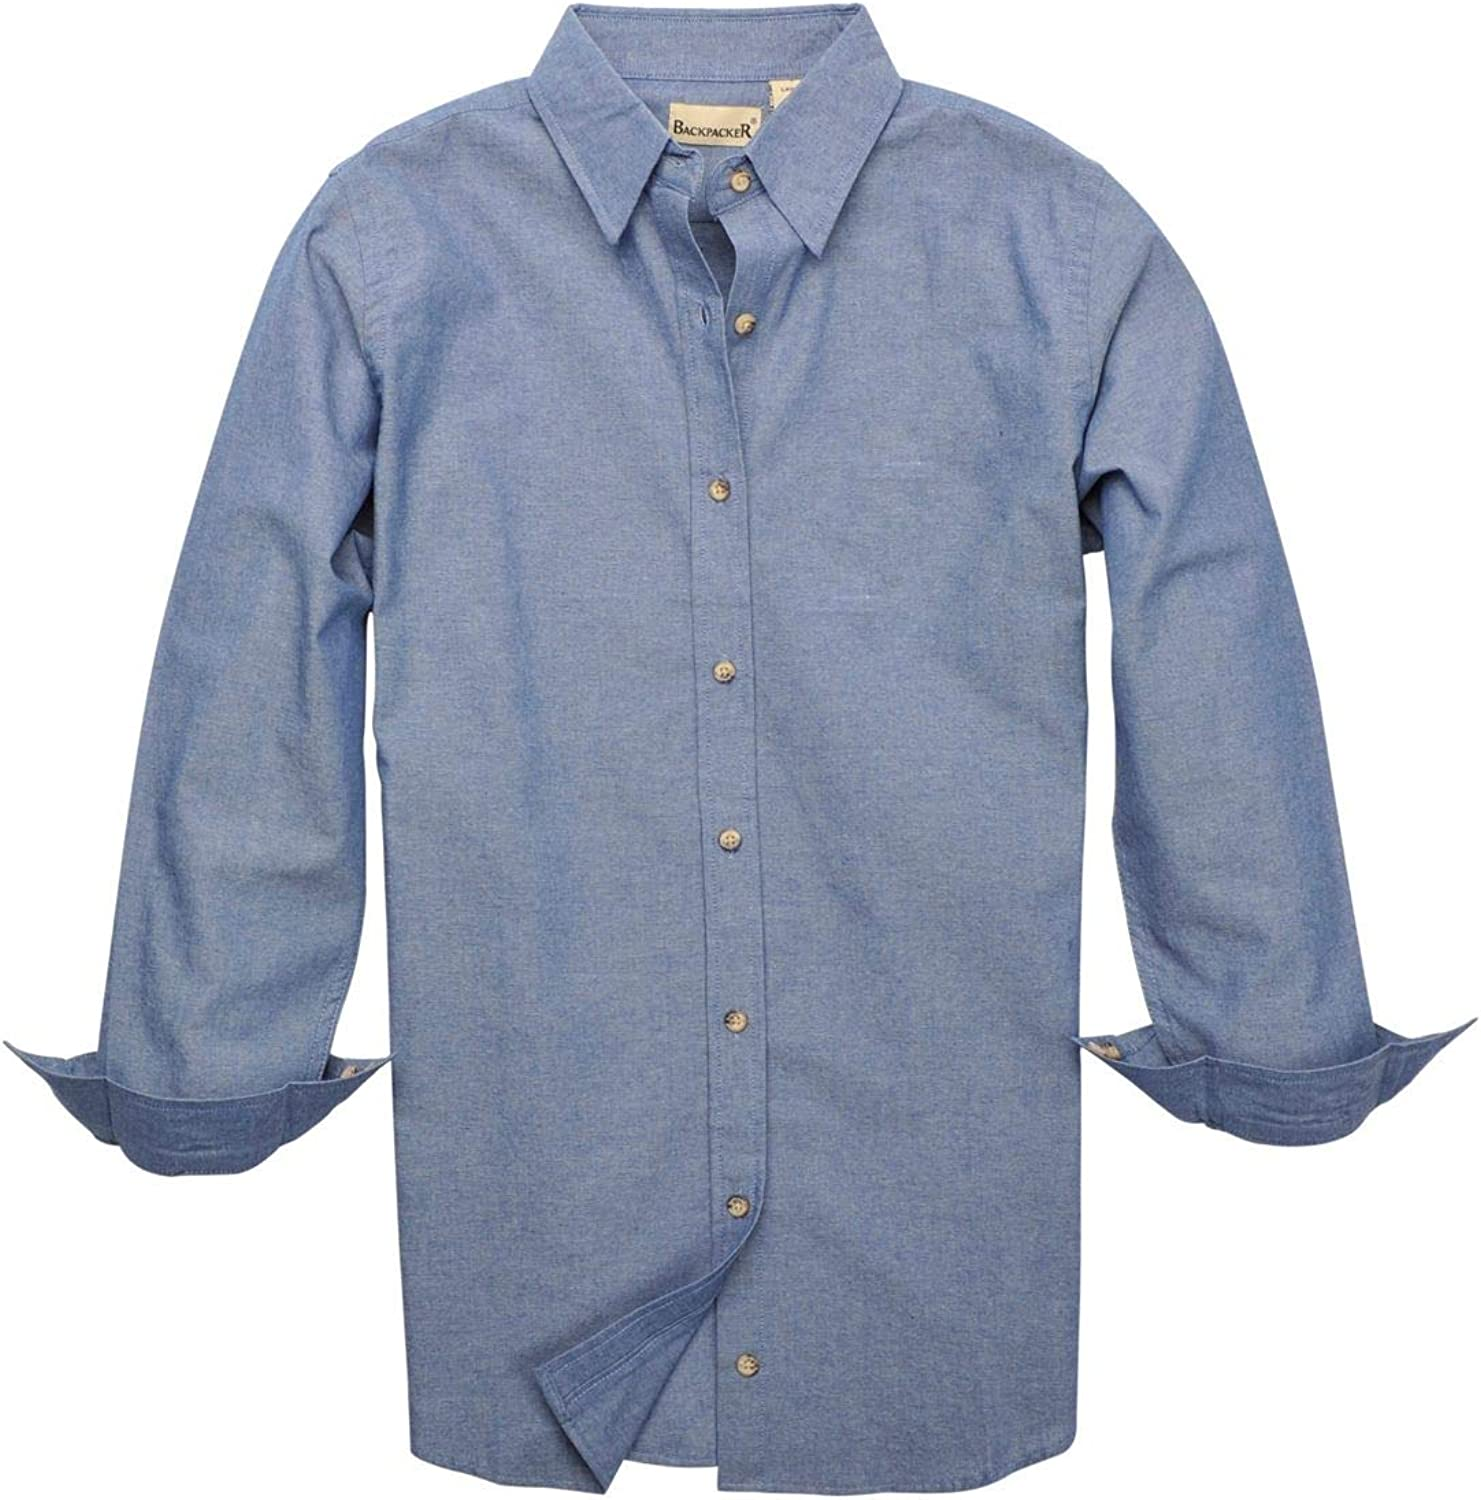 Colorado Springs Mall Backpacker Safety and trust Women's Chambray